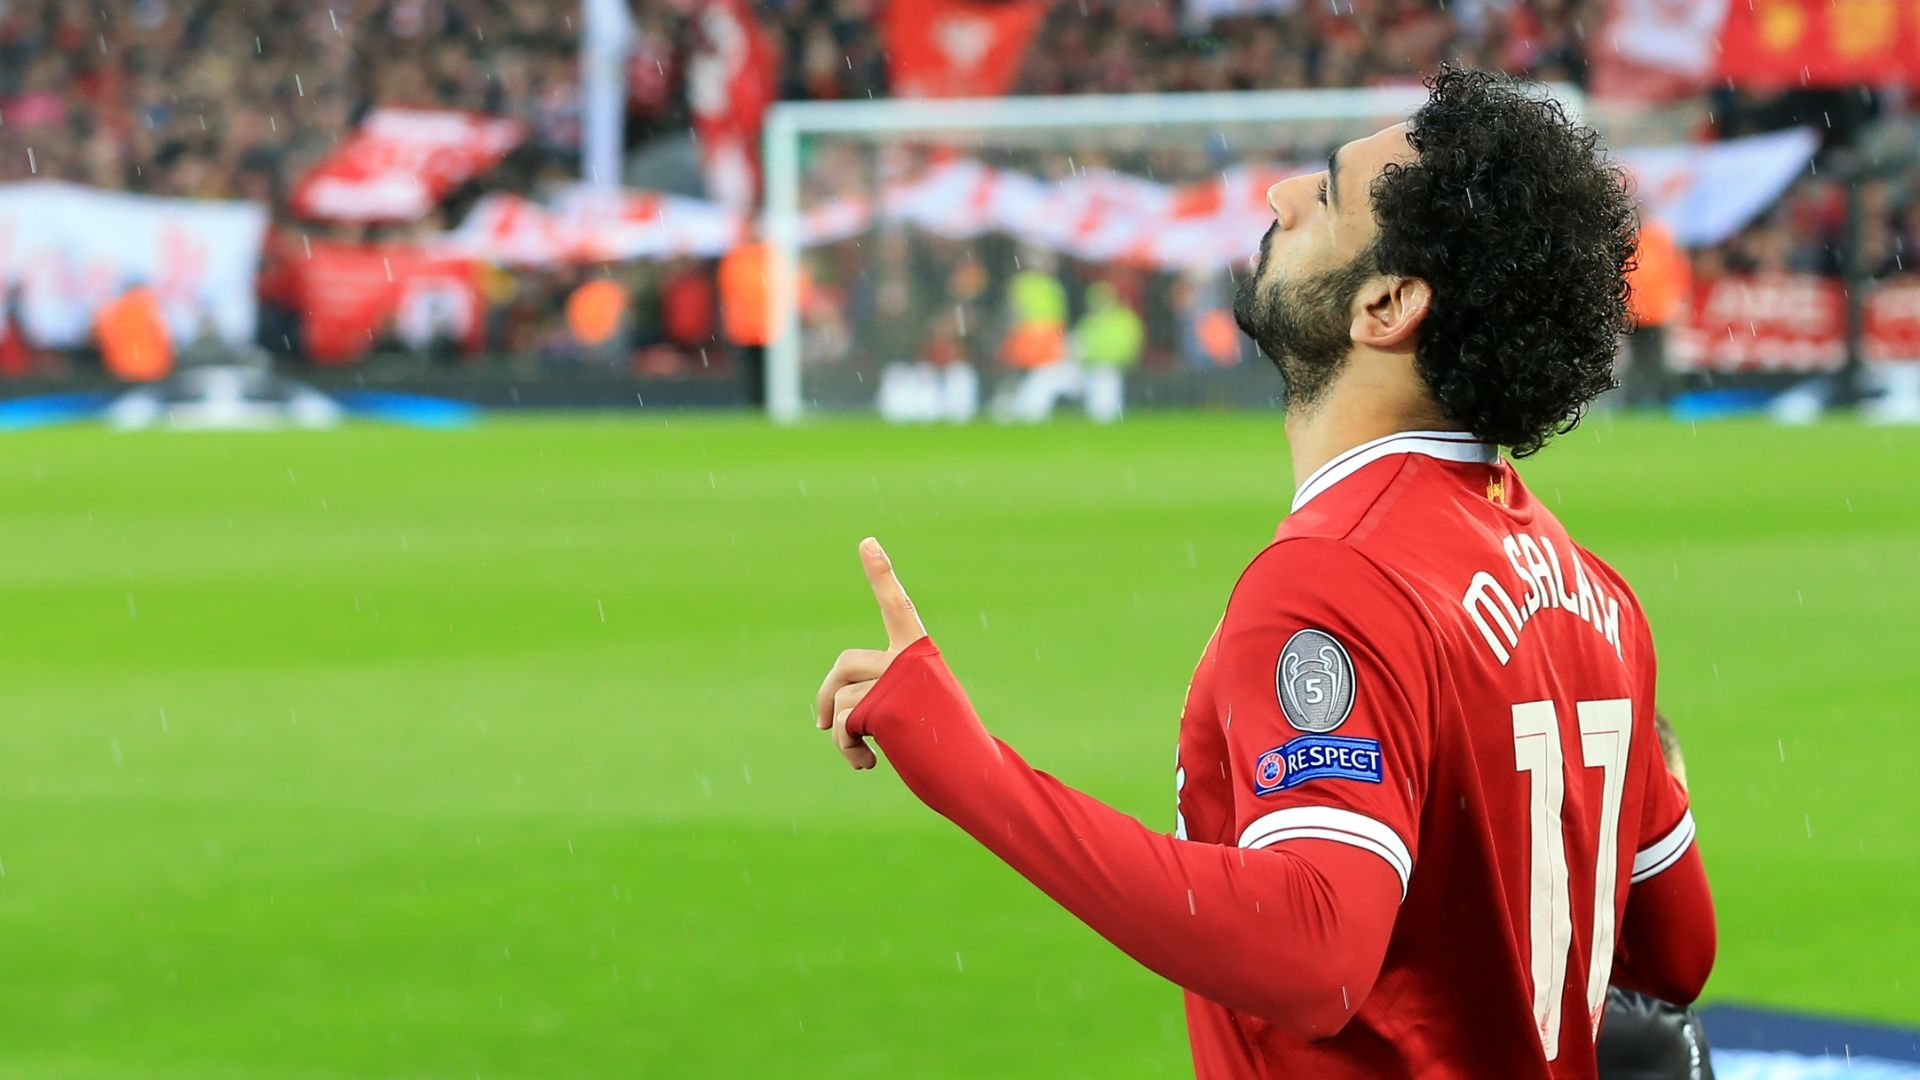 Transfer Talk: Liverpool won't sell Salah to Real at any price